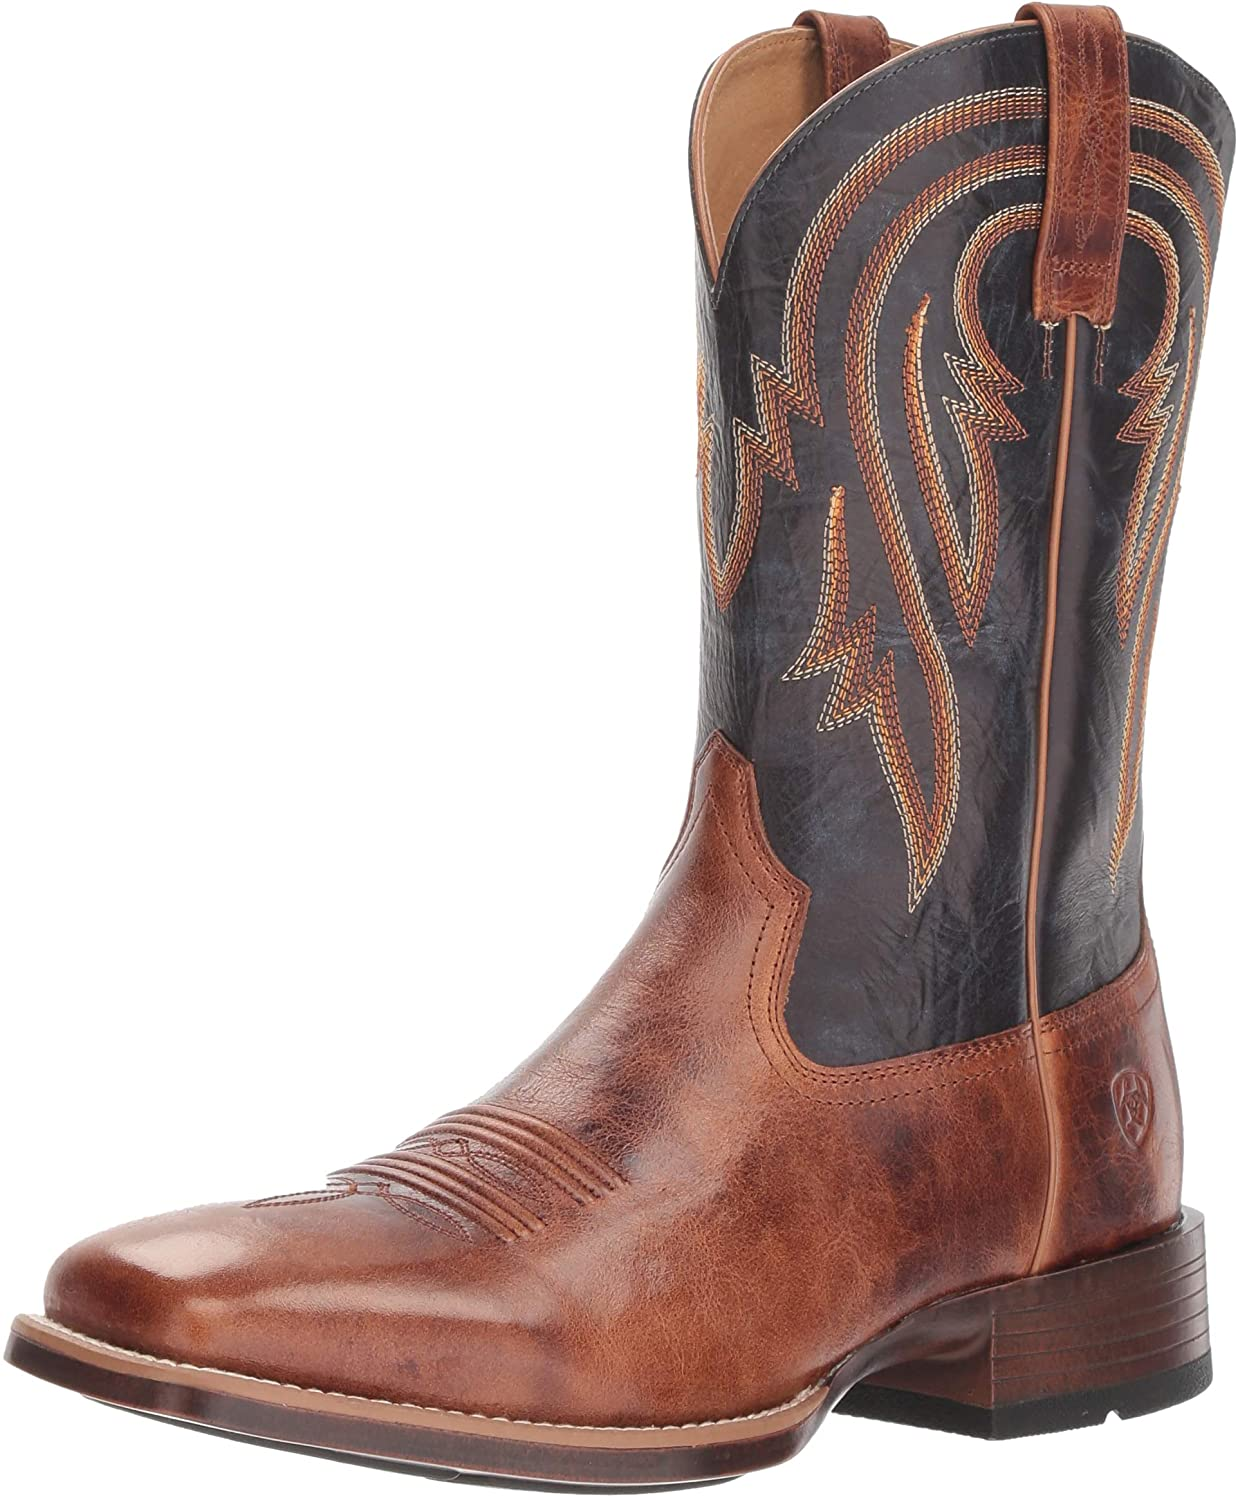 Ariat Men's Plano Western Boot, Gingersnap, 10 2E US